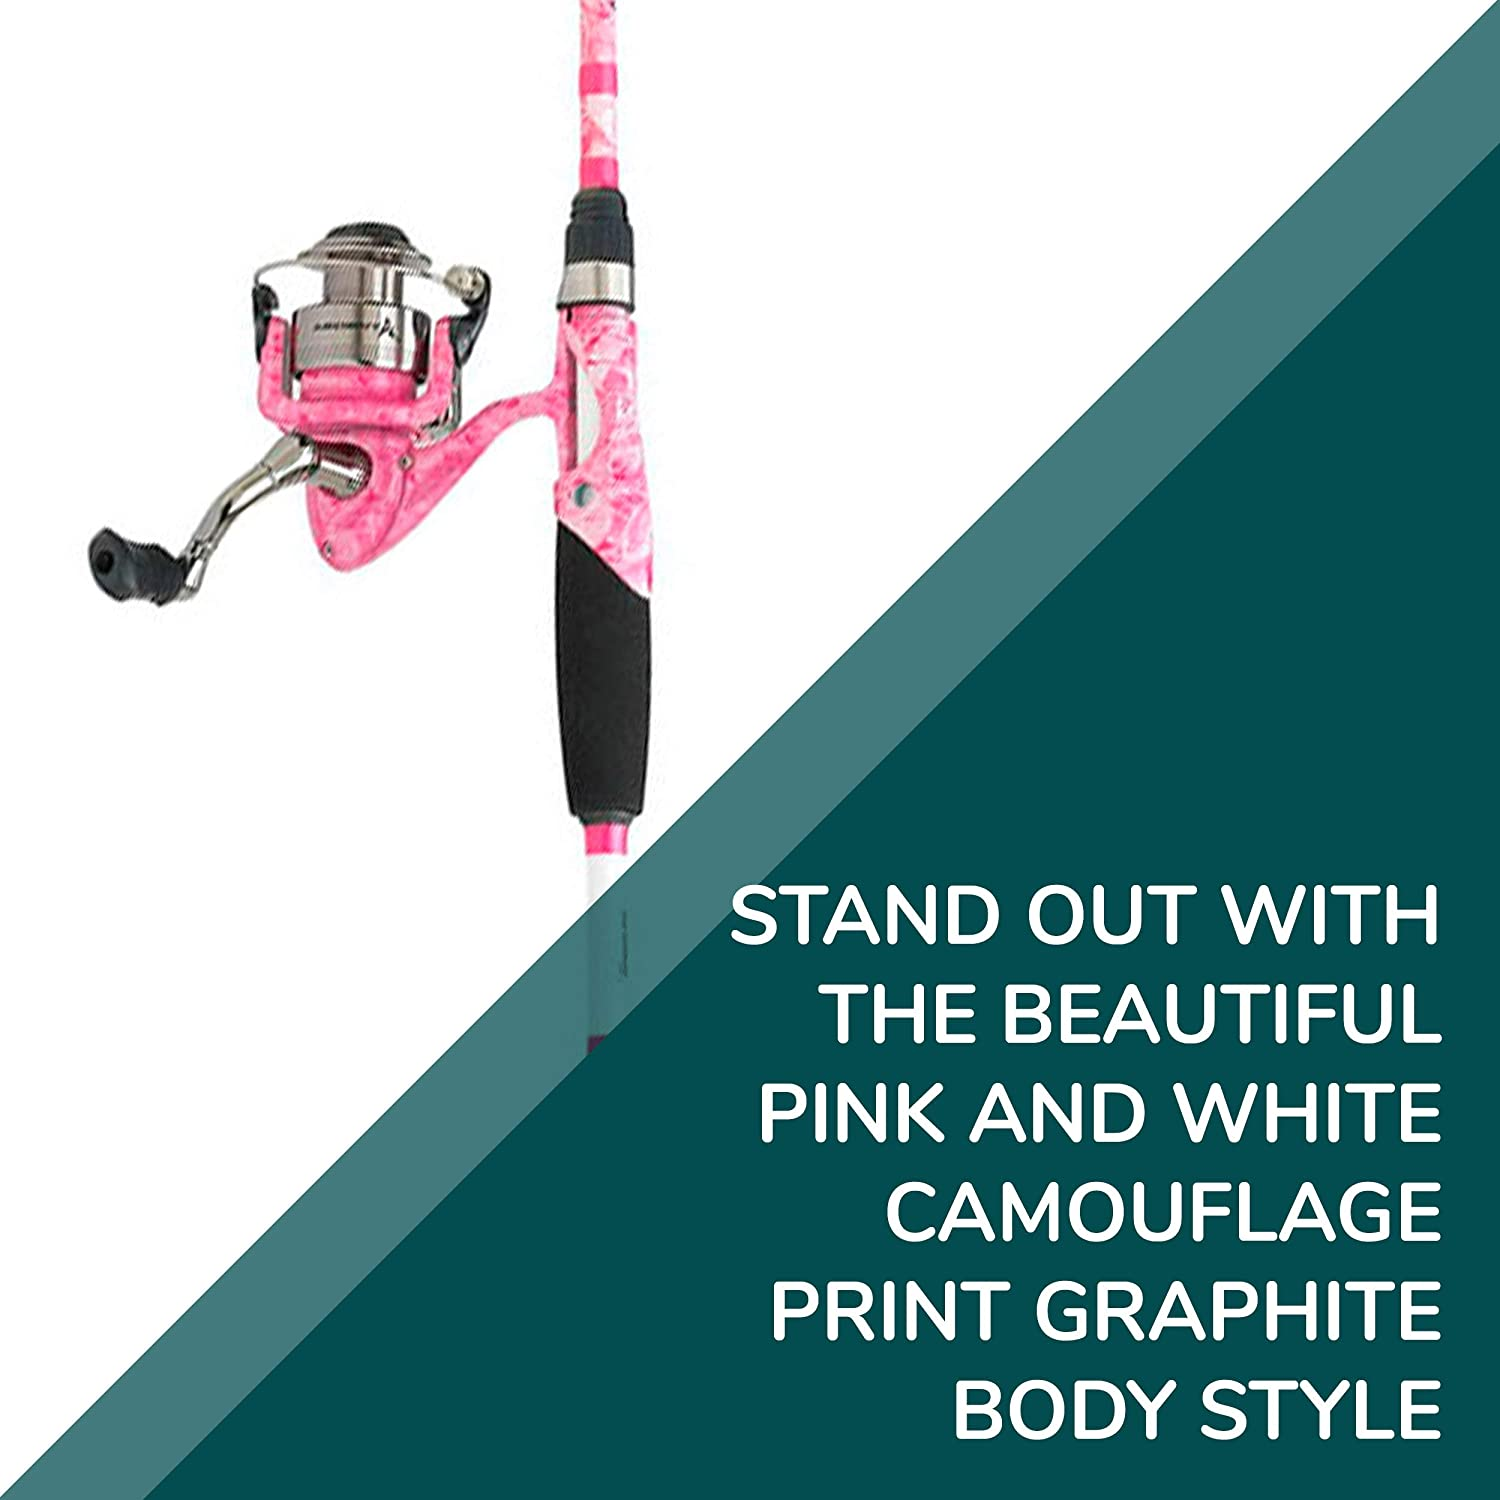 Pink Fishing Rod and Reel Ardent Lady Fishouflage Spinning Combo Two Piece Graphite 66 Rod with 5.5:1 Gear Ratio Reel